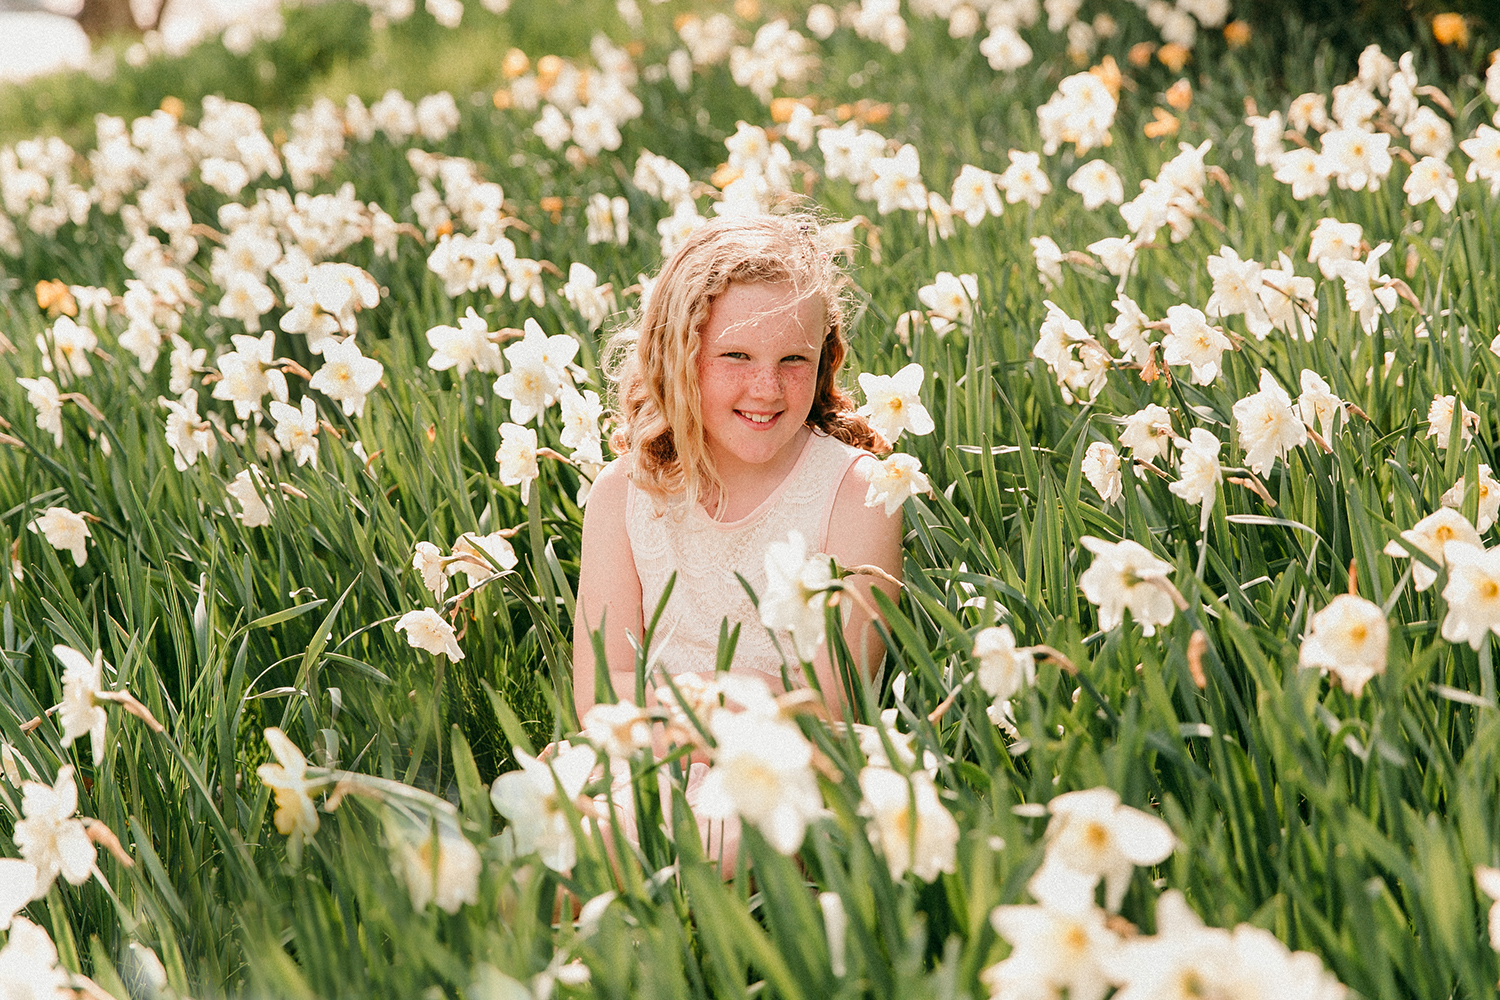 daffodils_wellesley_college.jpg